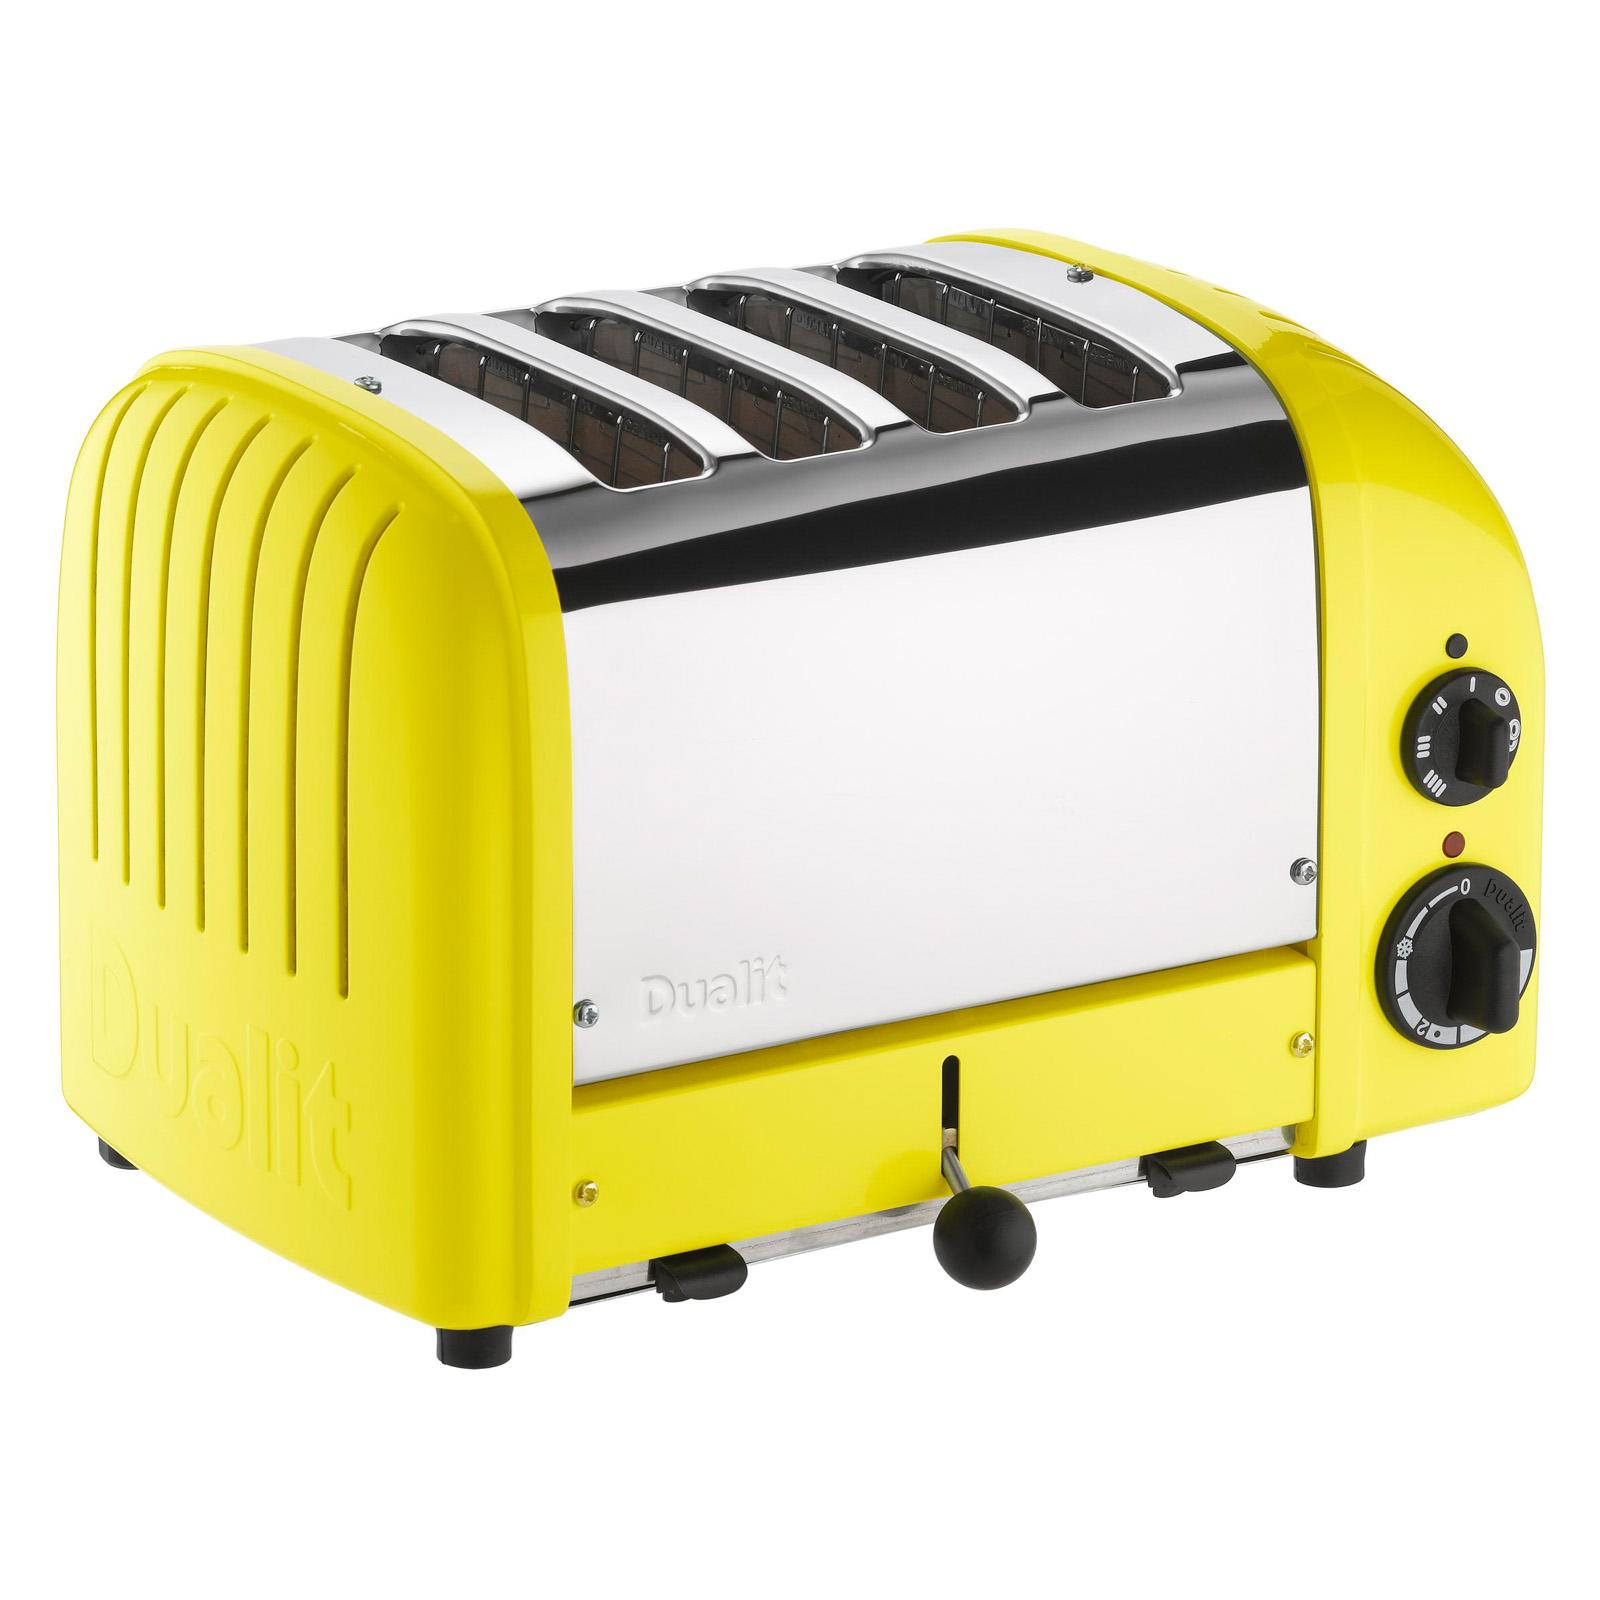 Dualit 47168 New Generation 4 Slice Classic Toaster - Cit...